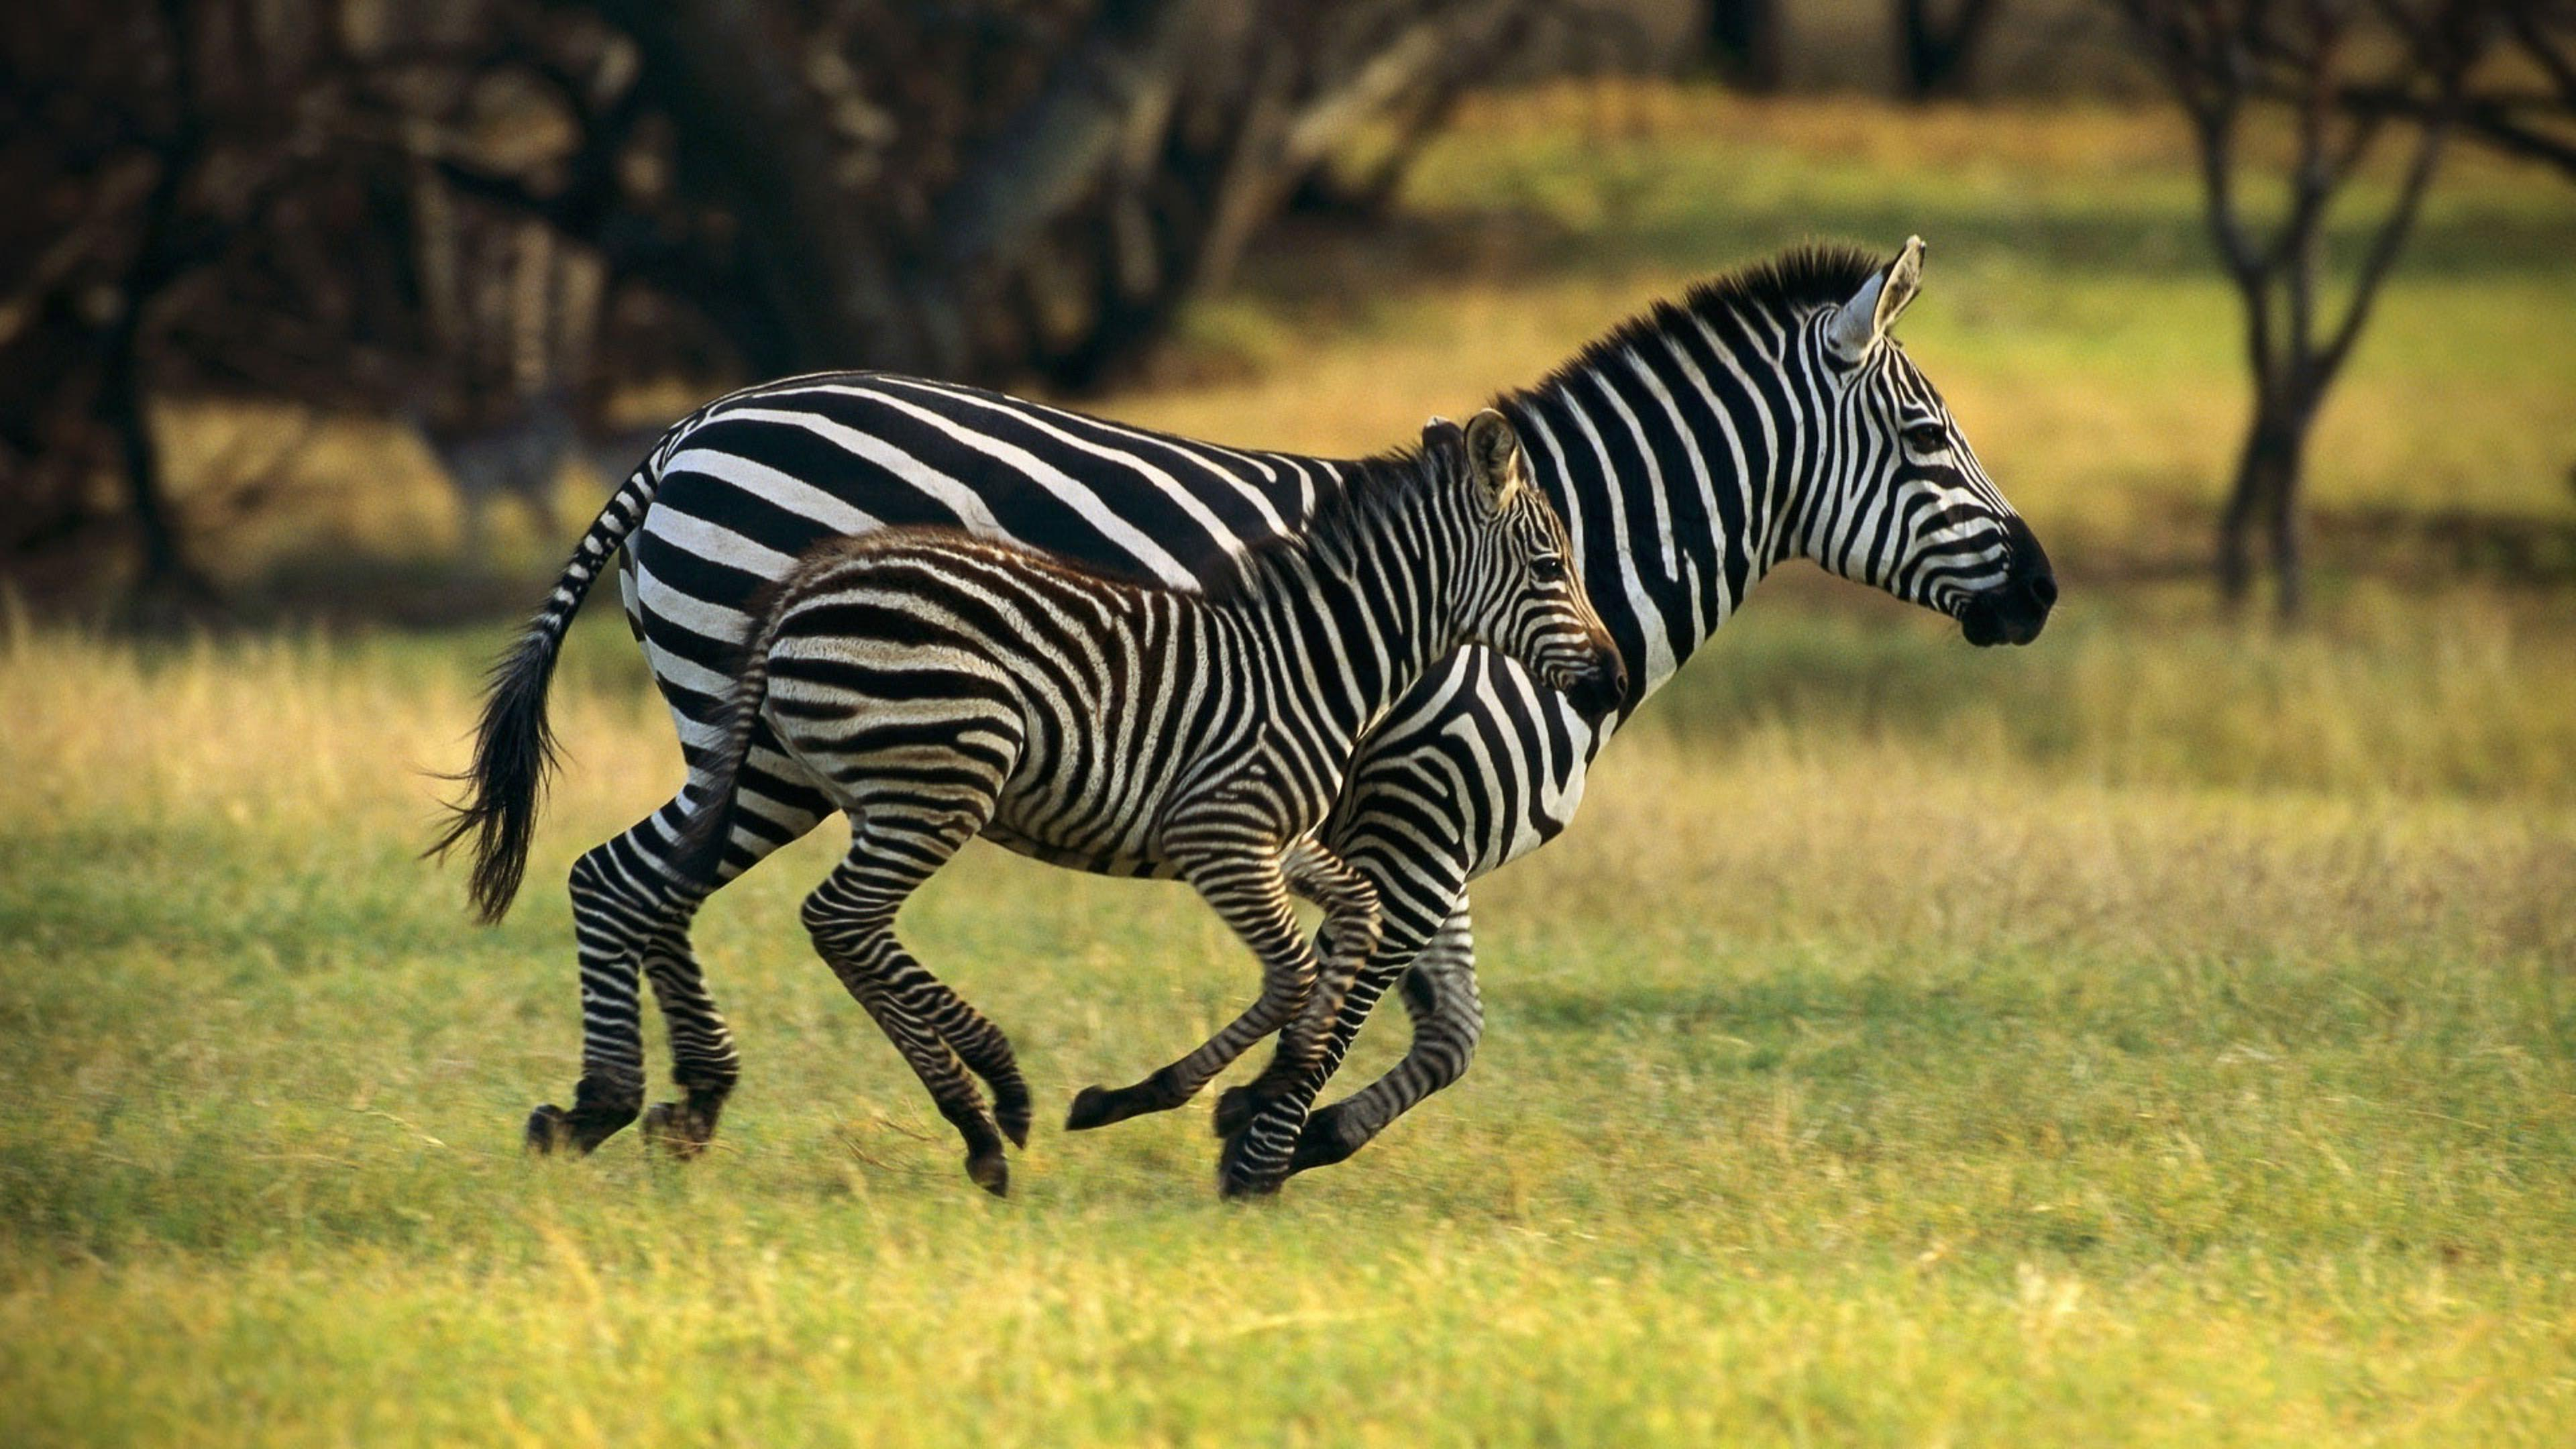 Mother And Child Running In The Jungle Zebra Animals Wallpaper Download 3840x2160